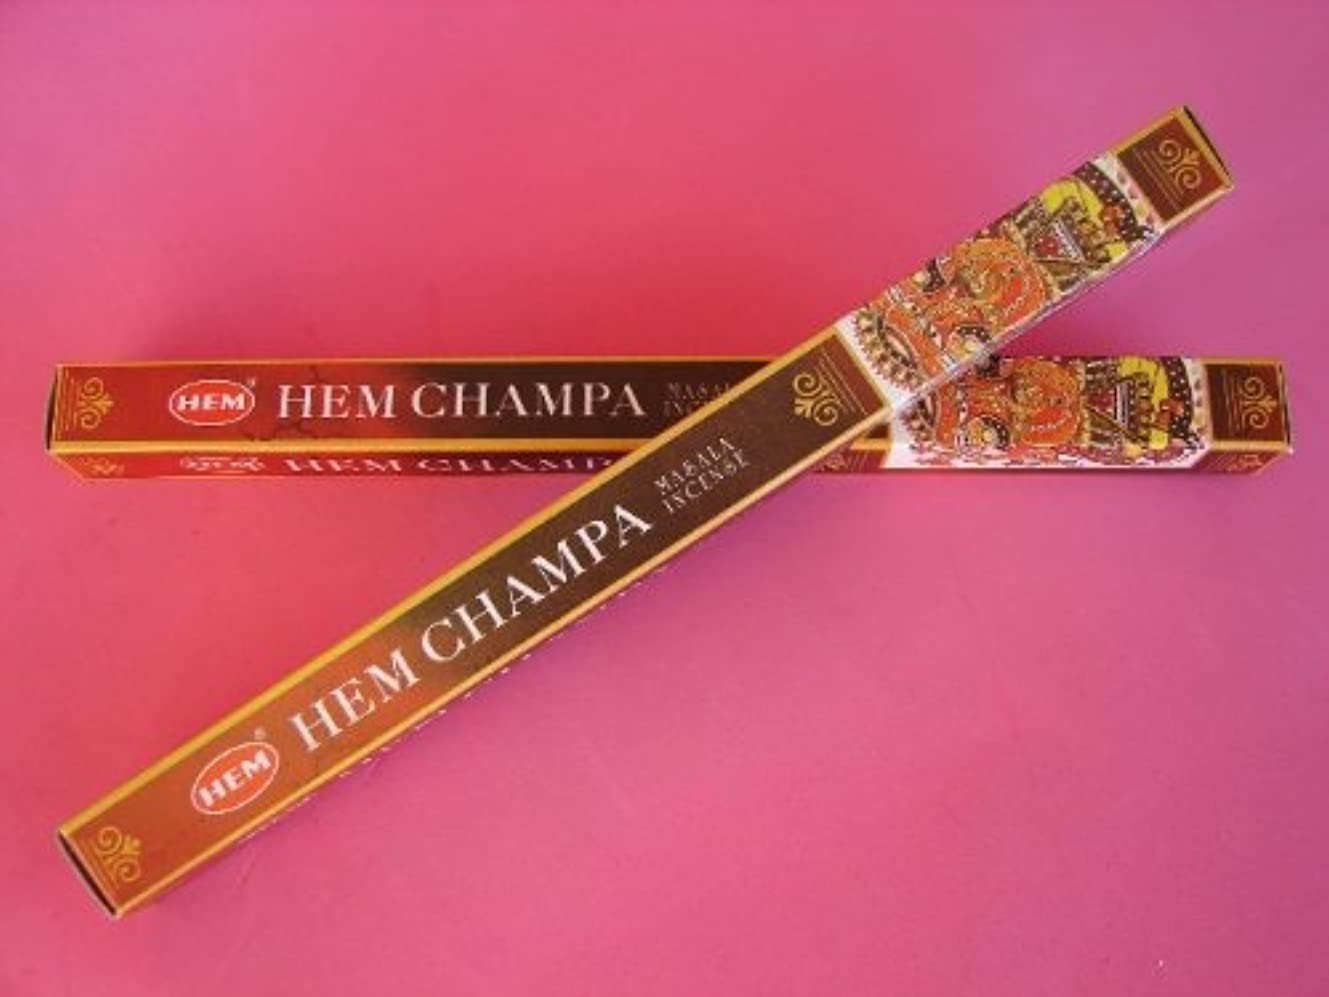 肥沃な逆説ワイプ4 Boxes of HEM CHAMPA Incense Sticks